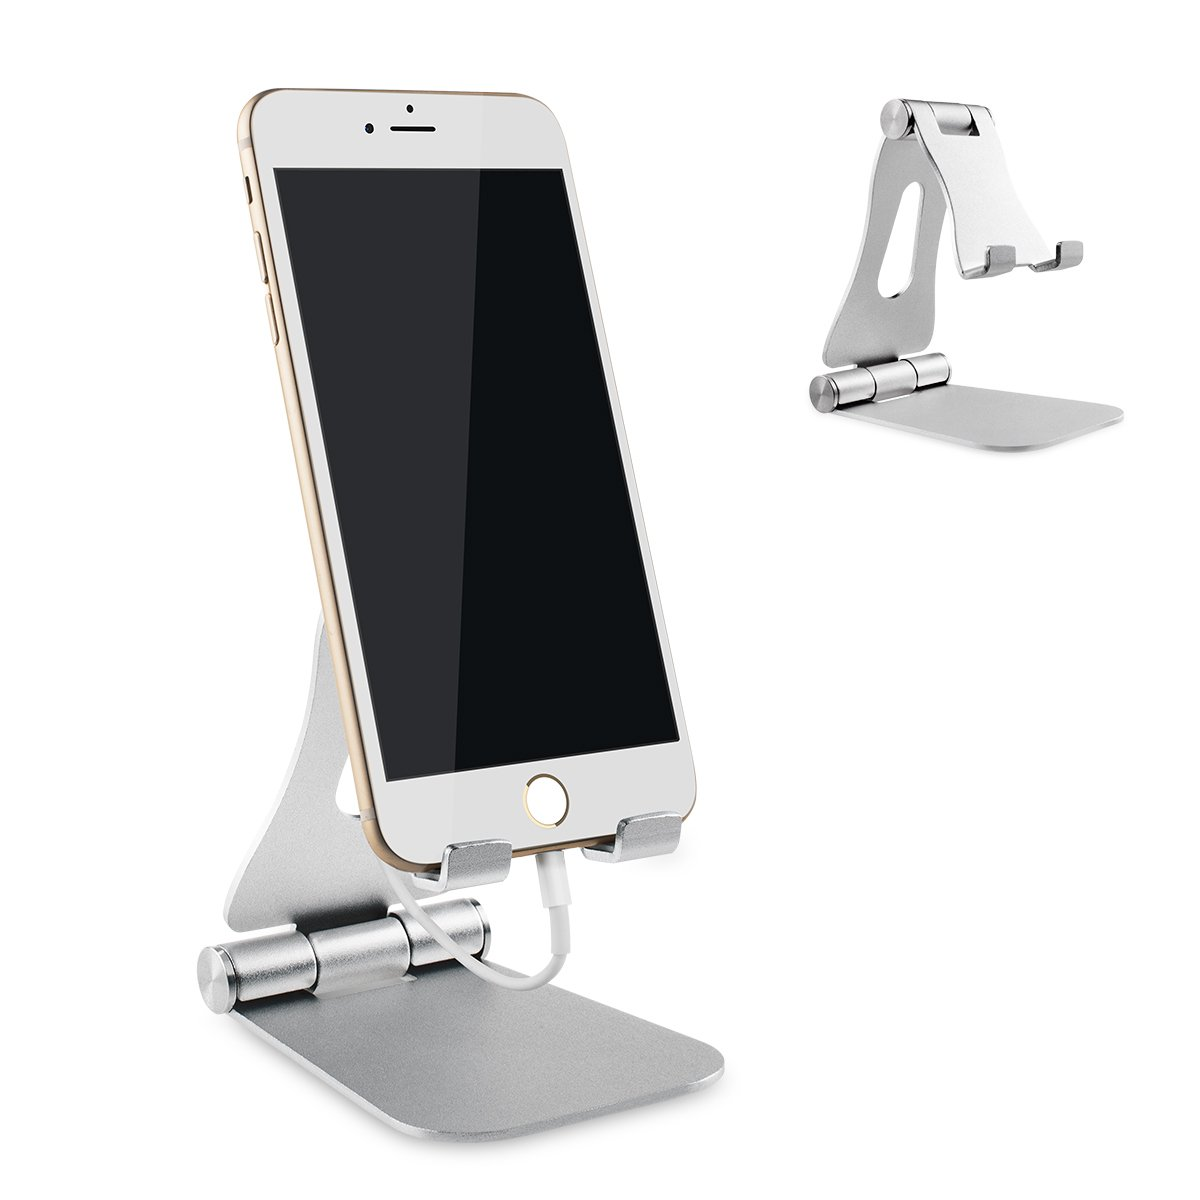 Adjustable Cell Phone Stand Portable Foldable Adjustable Cell Phone Desk Stand Mount All Smart phone Devices (Silver)